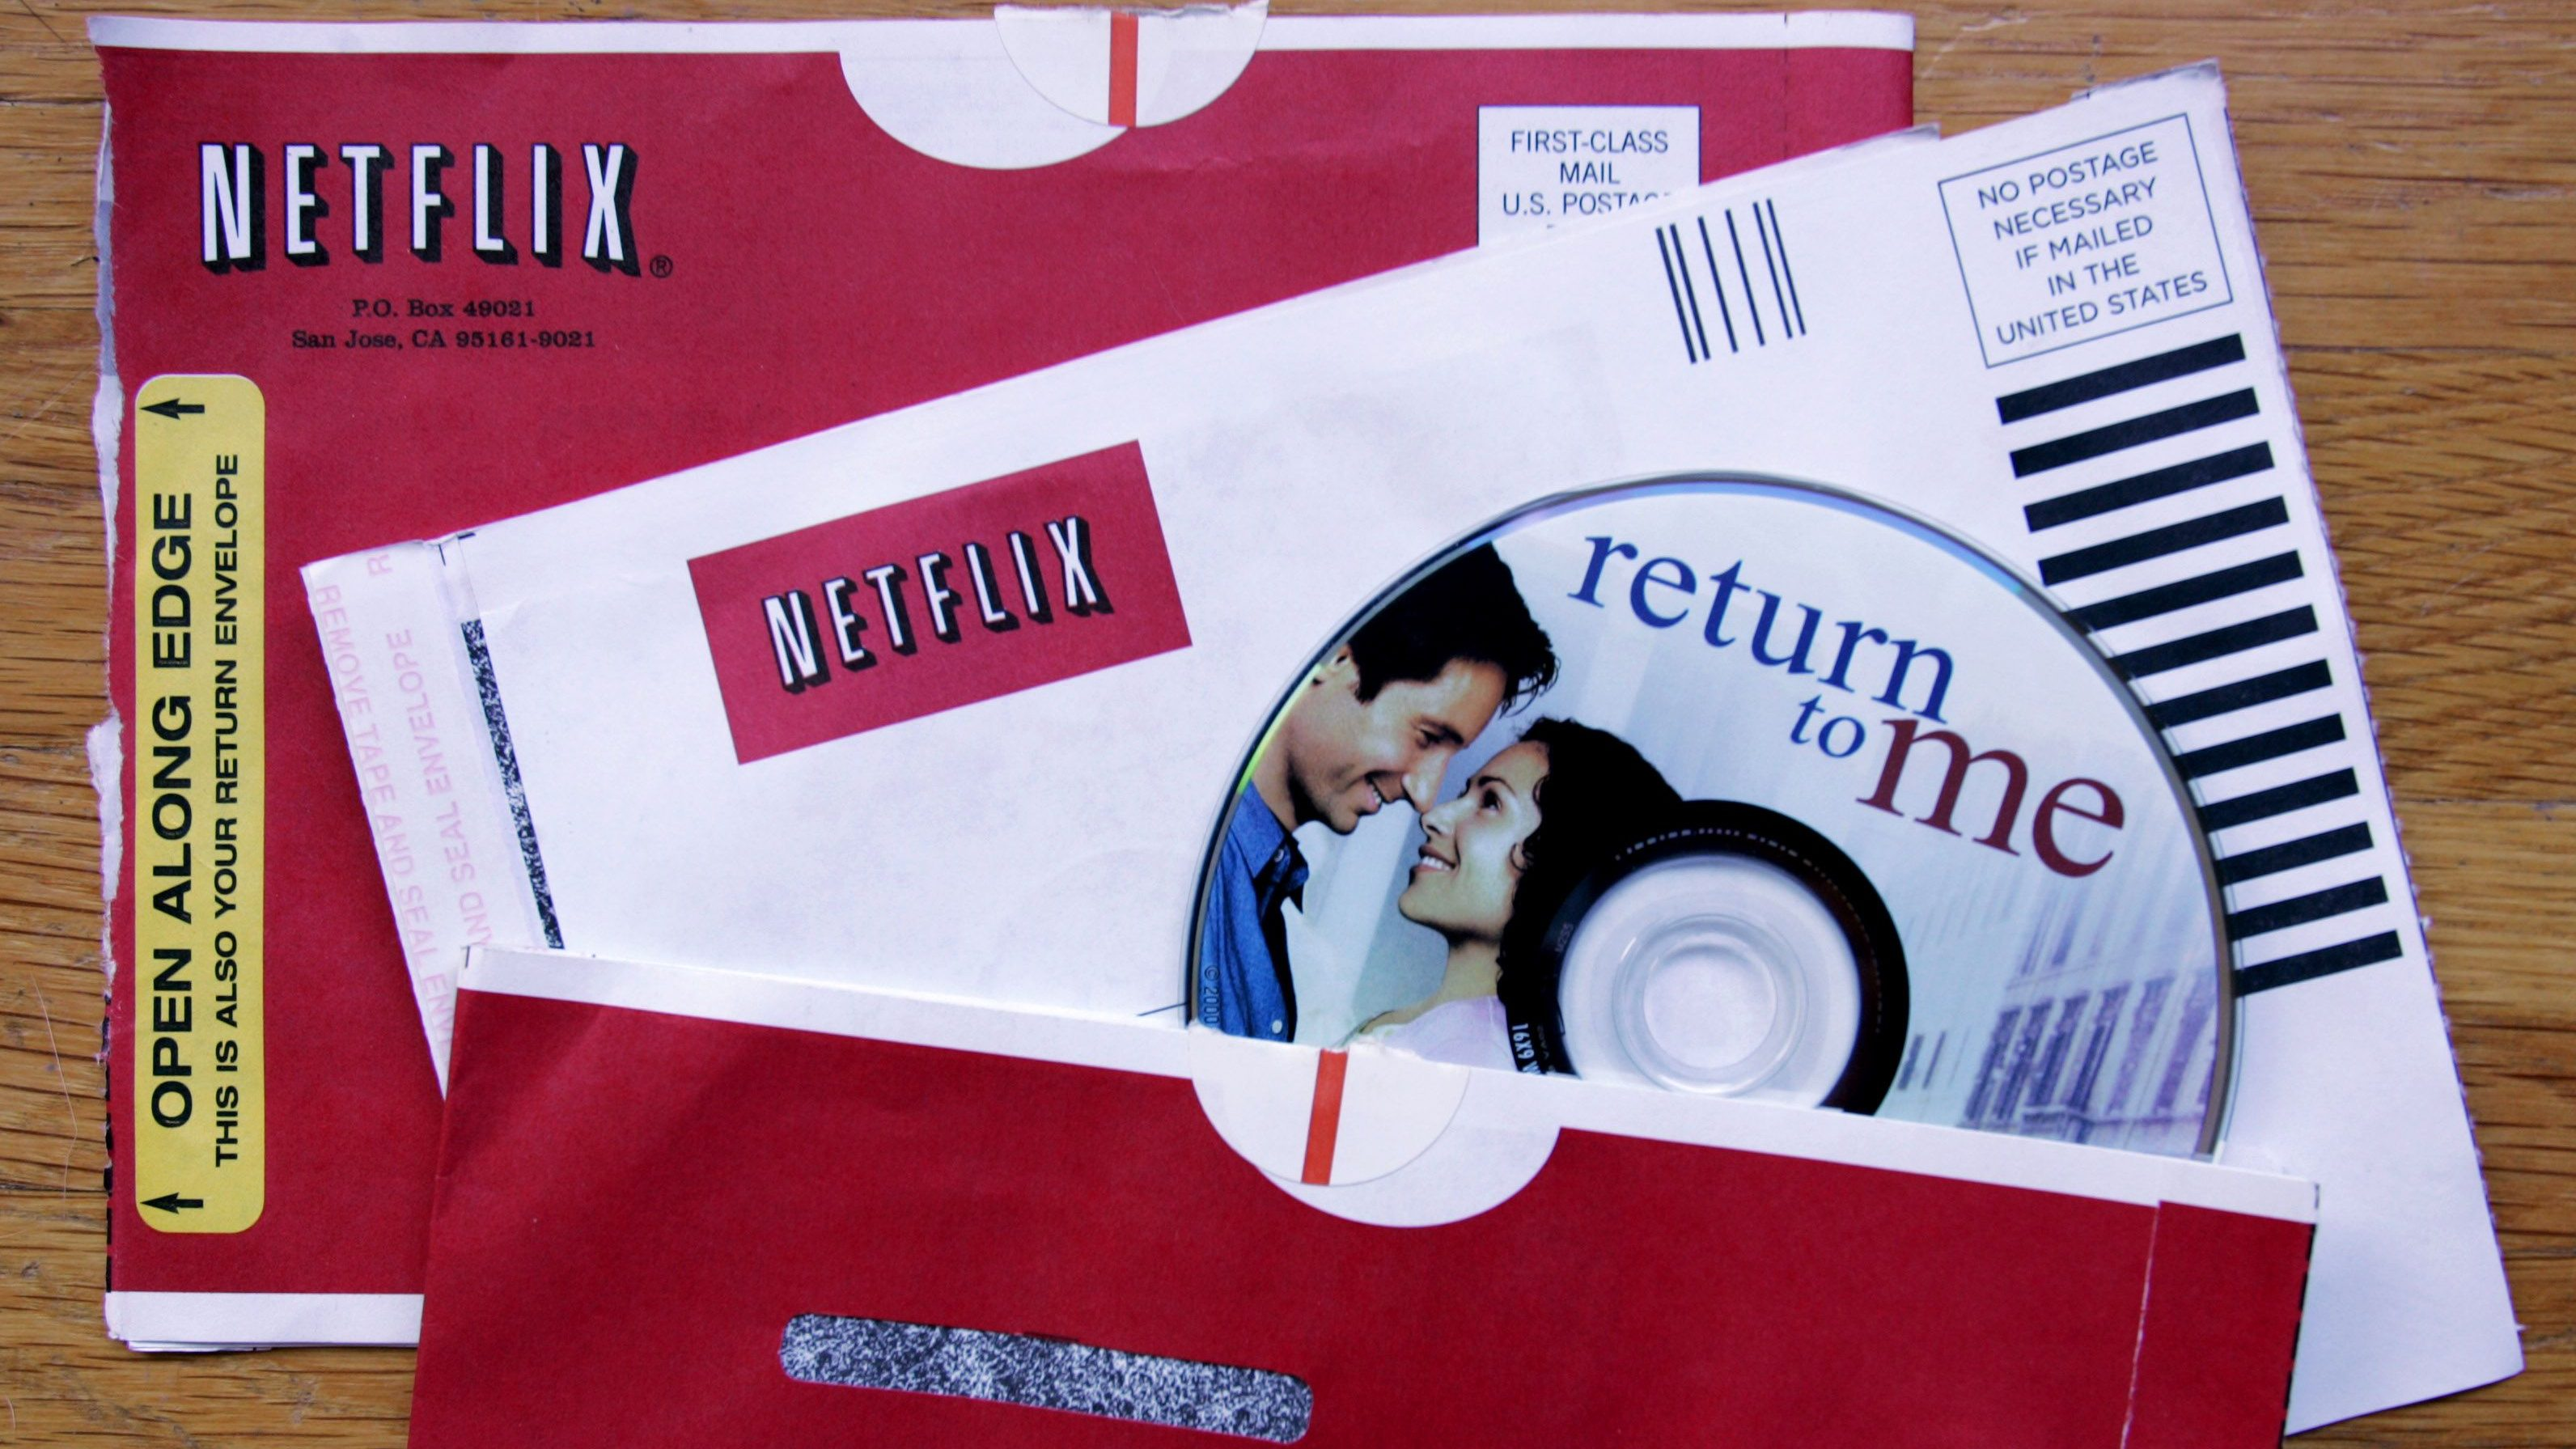 "Netflix envelopes and the DVD movie ""Return to Me"" is displayed at Netflix customer Coleman Garrett's home in Palo Alto, Calif., Friday, July 22, 2005. (AP Photo/Paul Sakuma)"